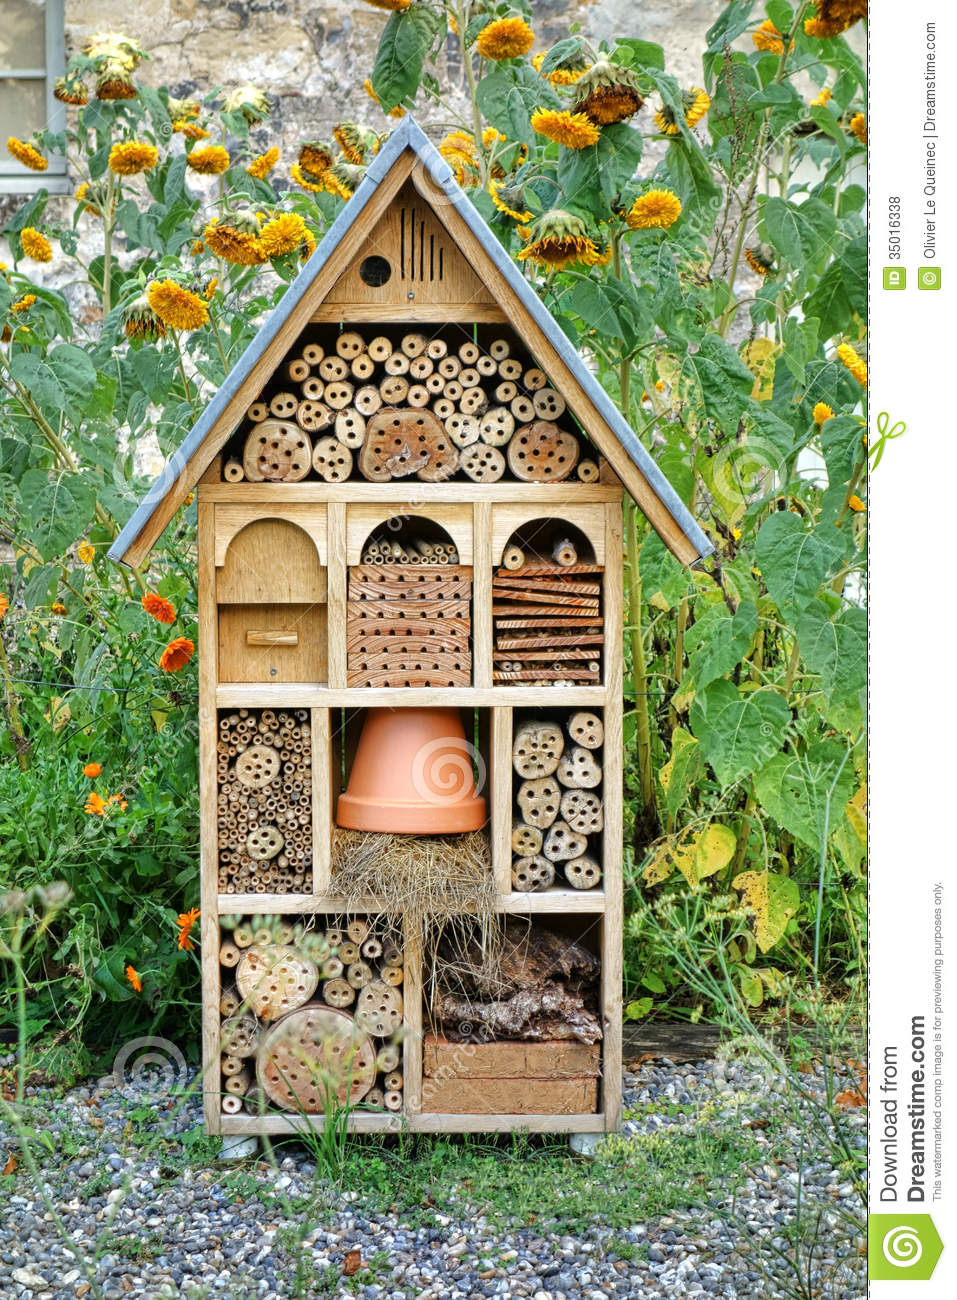 Craftsman built insect hotel decorative wood house stock for Maison decorative